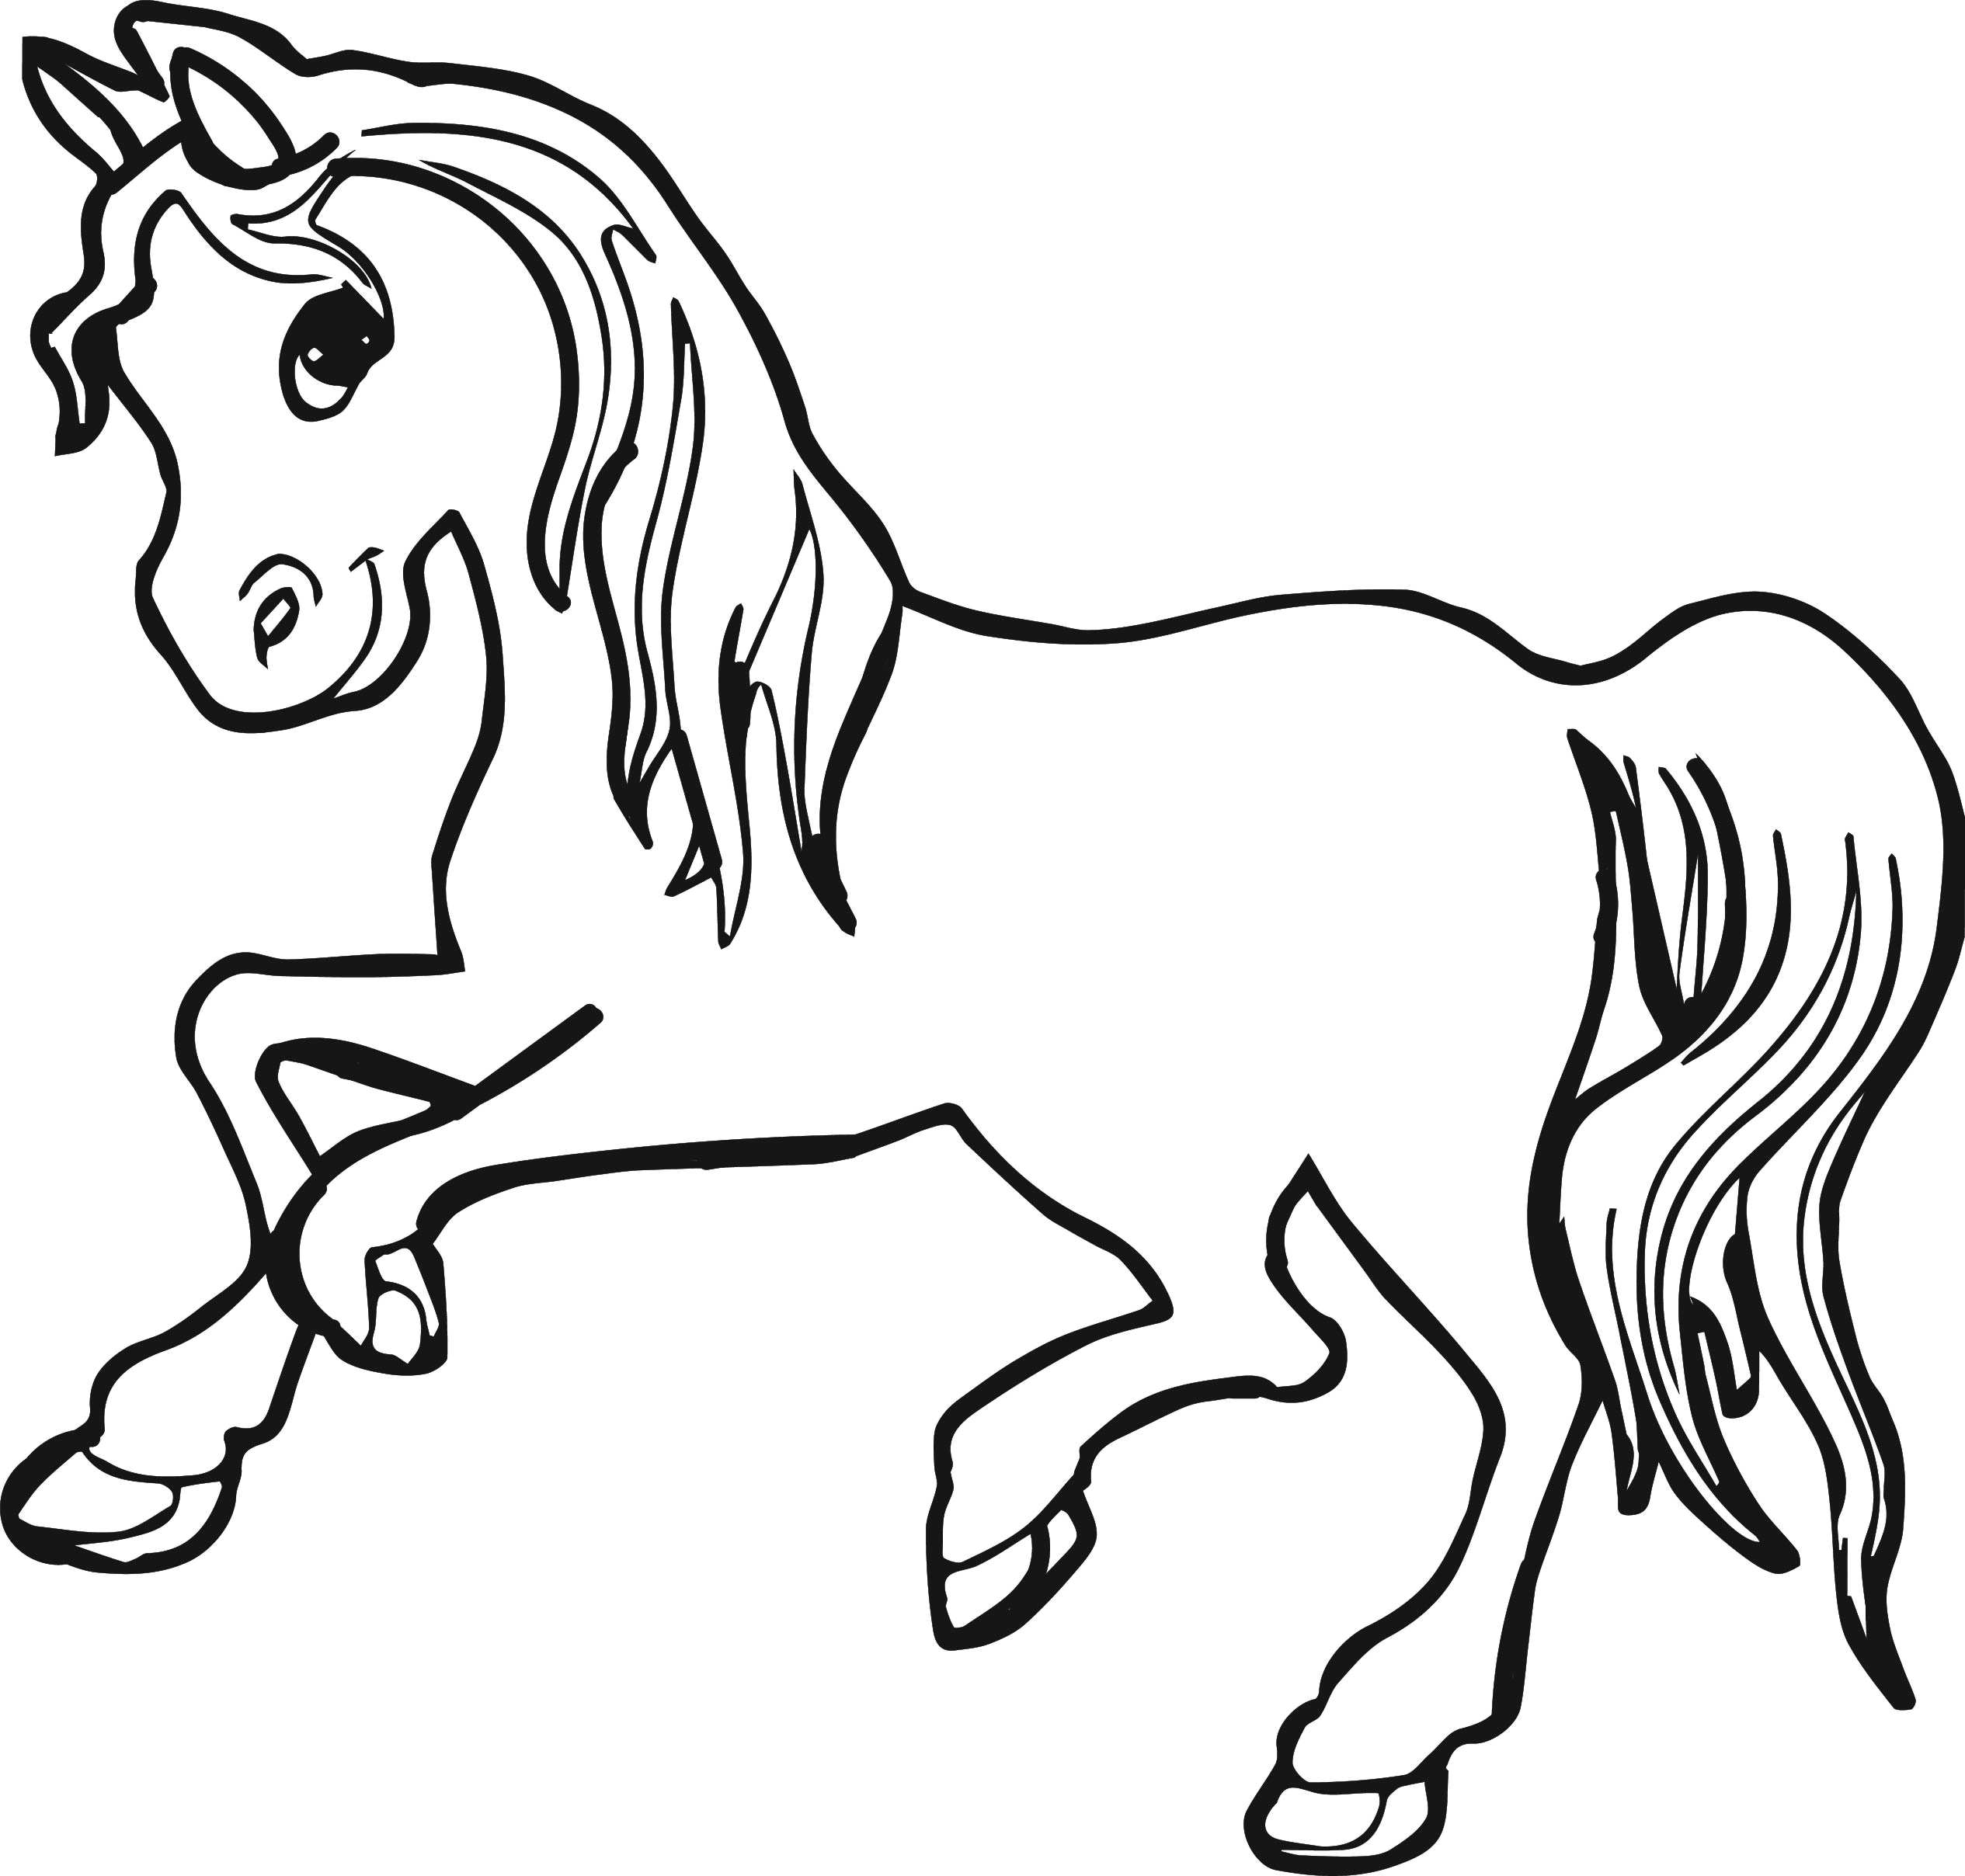 animal outlines to color free outline pictures of animals for colouring download animal color to outlines